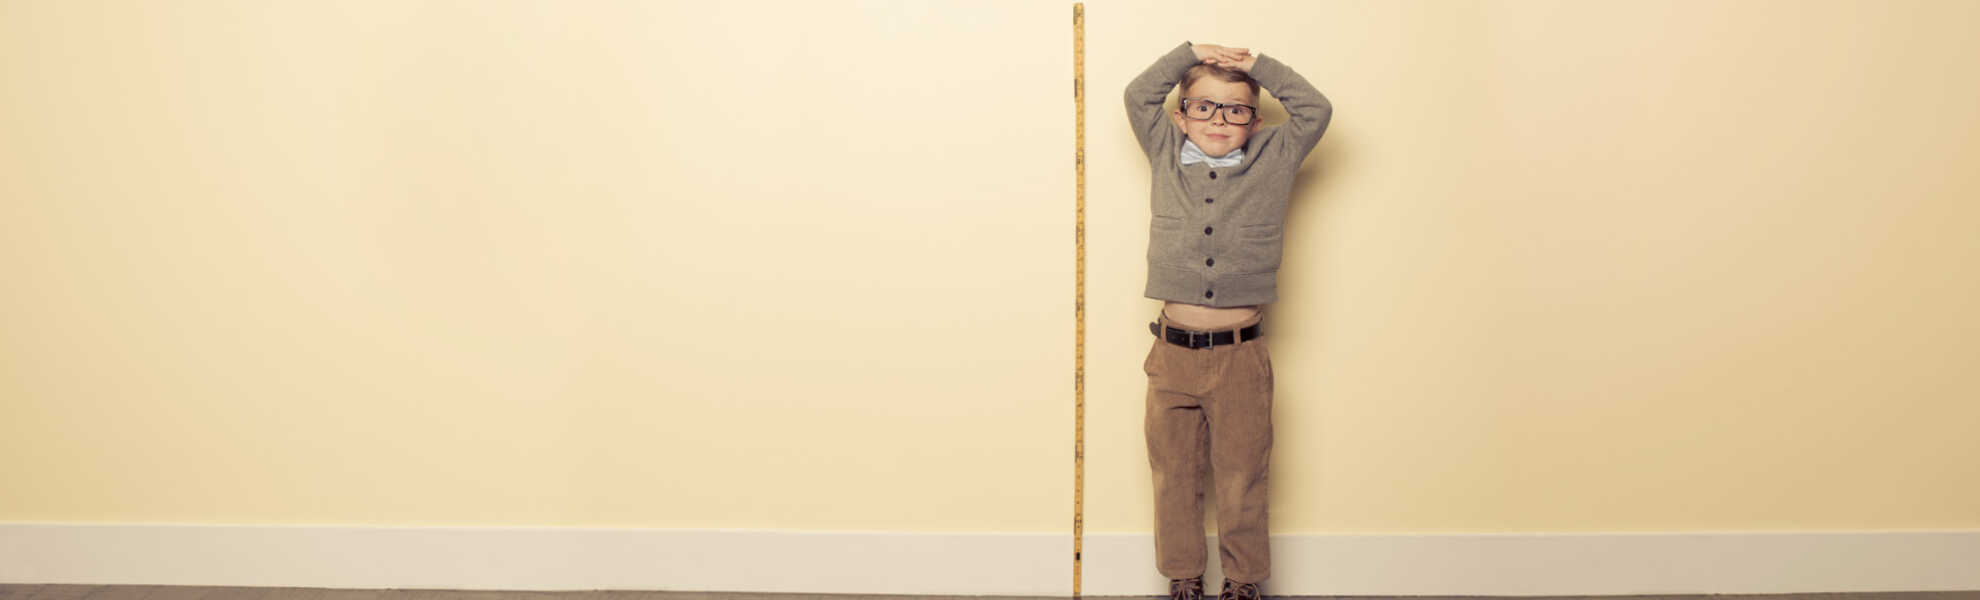 A child measuring height to see if he has grown taller